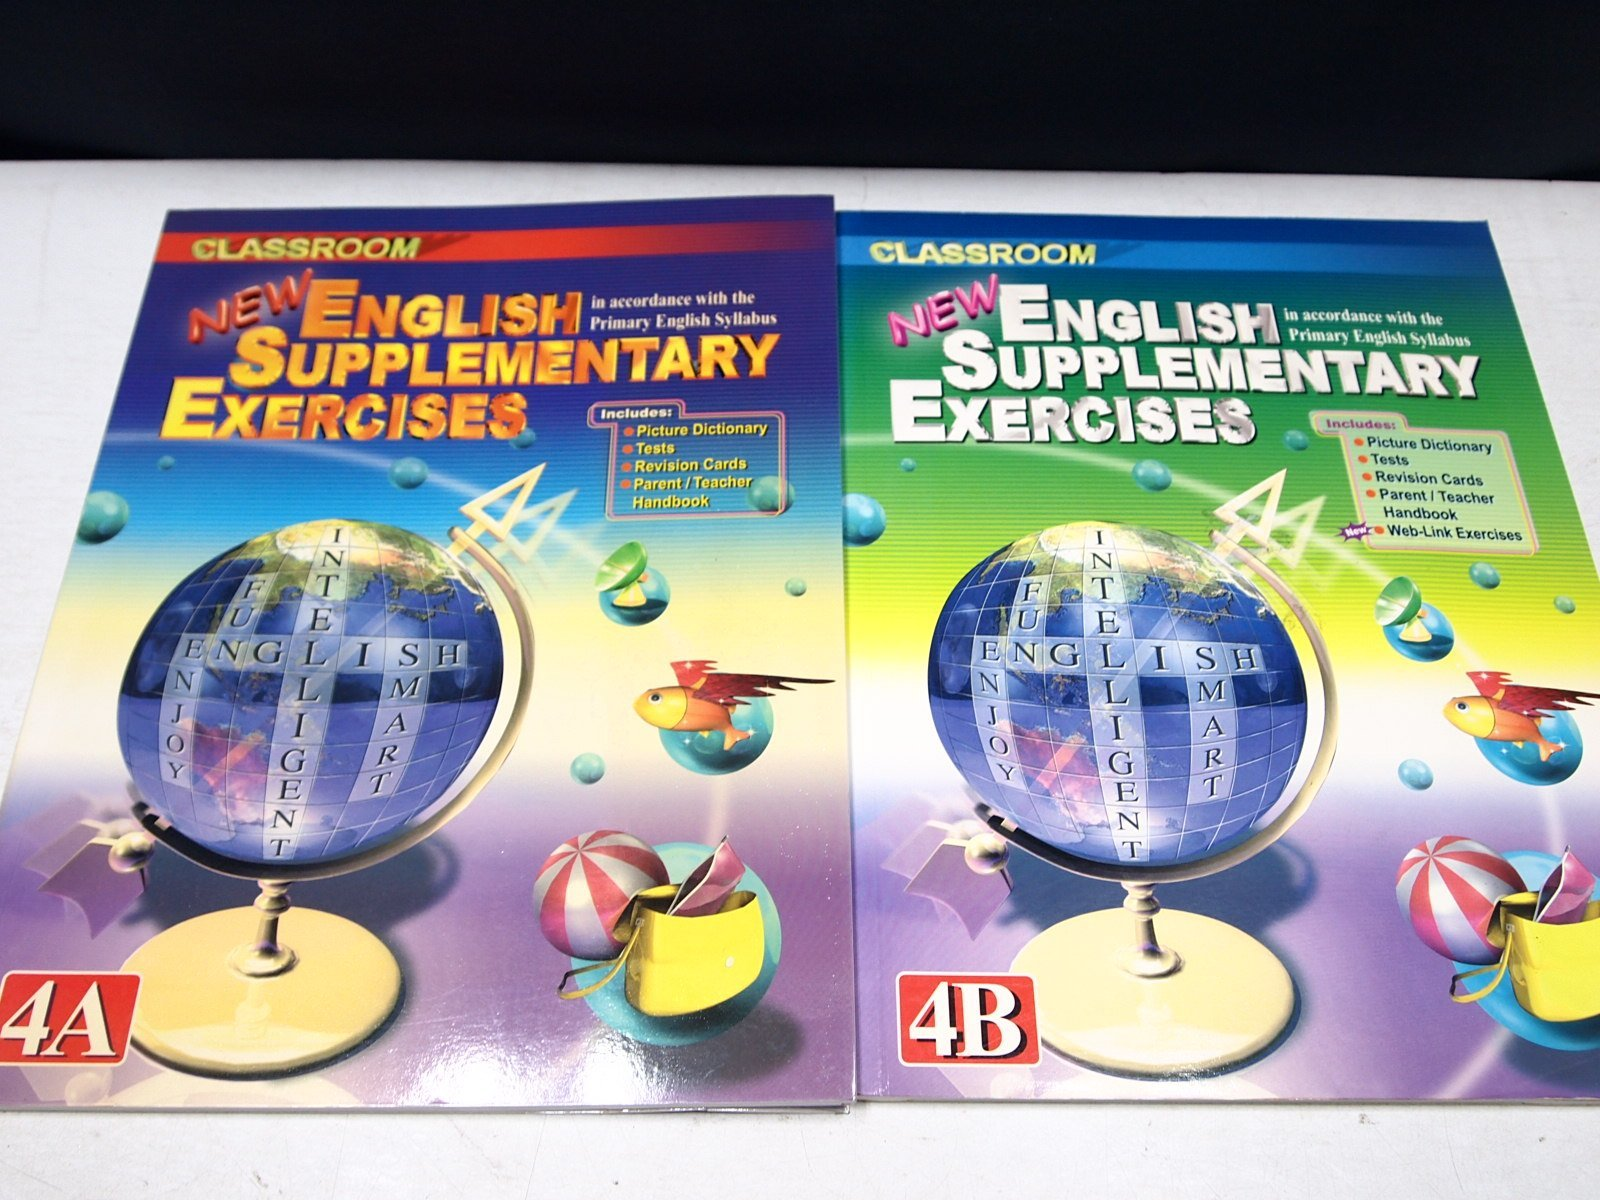 【考試院二手書】《NEW ENGLISH SUPPLEMENTARY EXERCISES 4A+4B 》│ 七成新